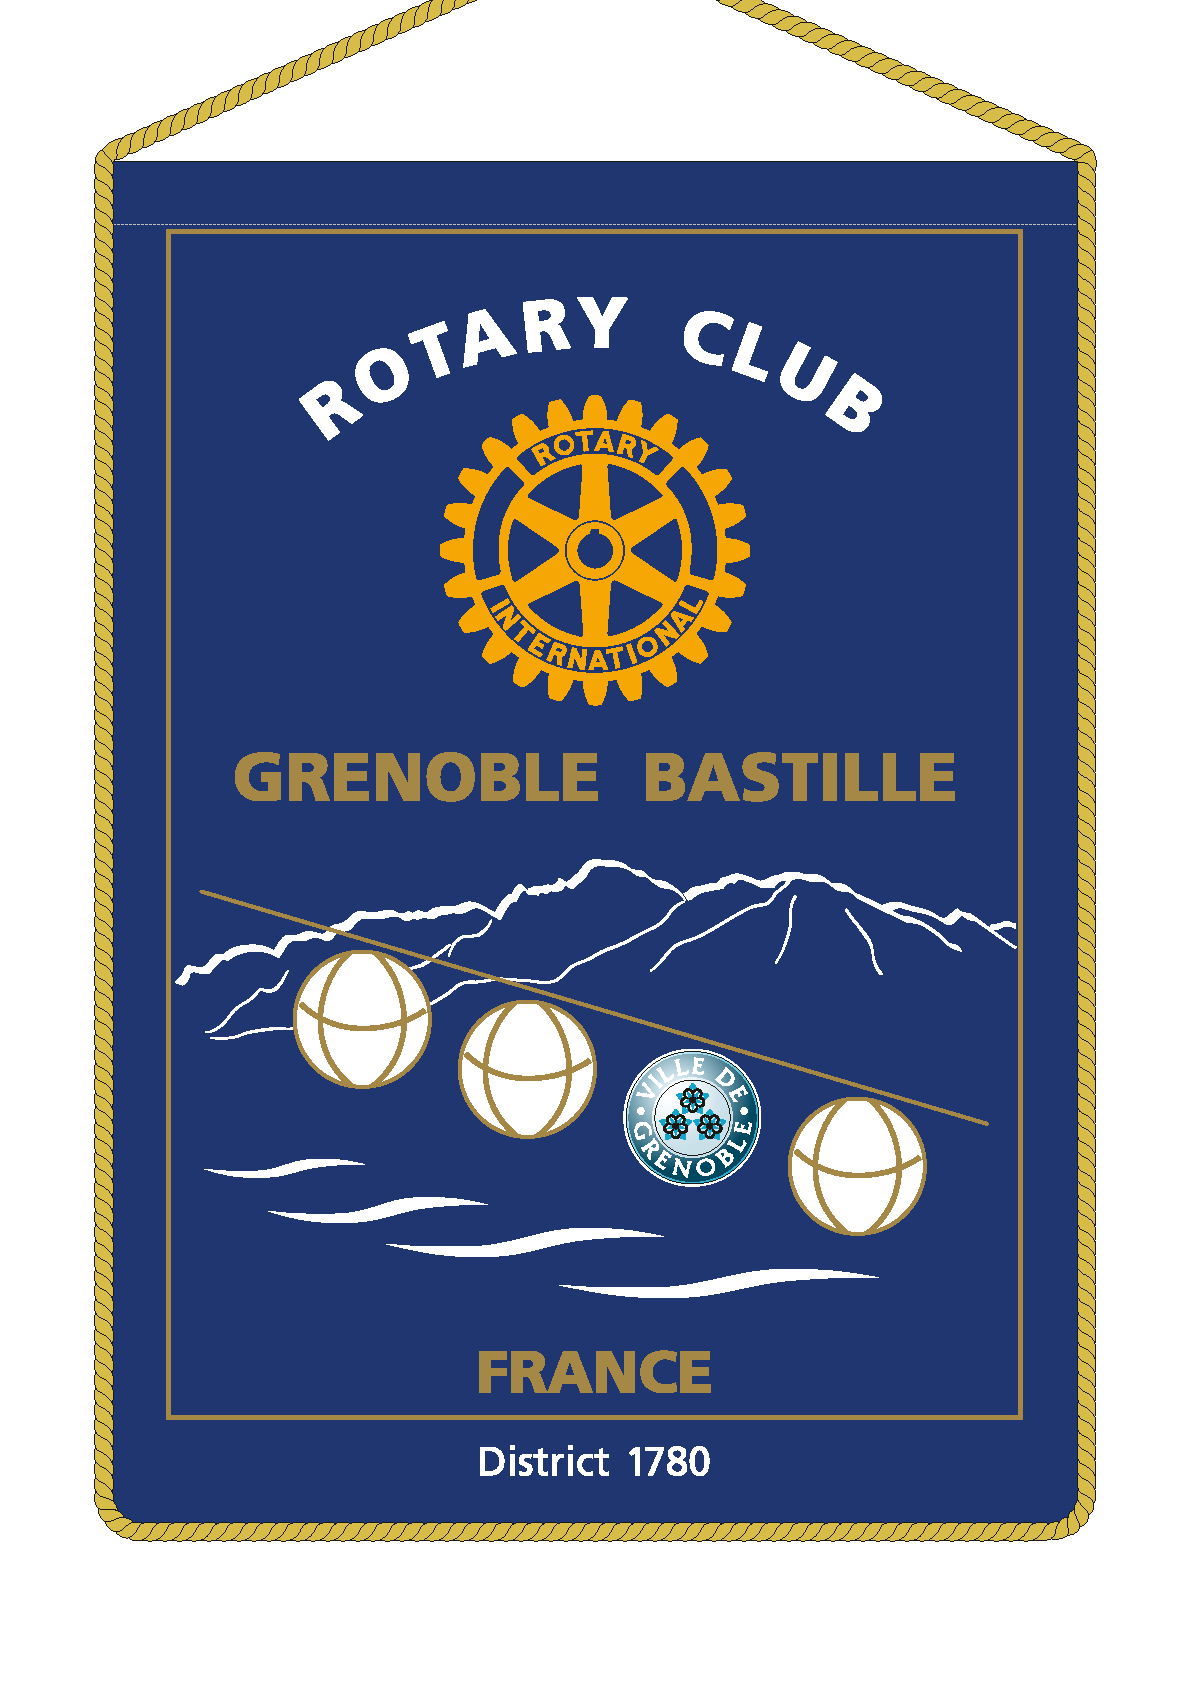 FANION ROTARY CLUB GRENOBLE BASTILLE